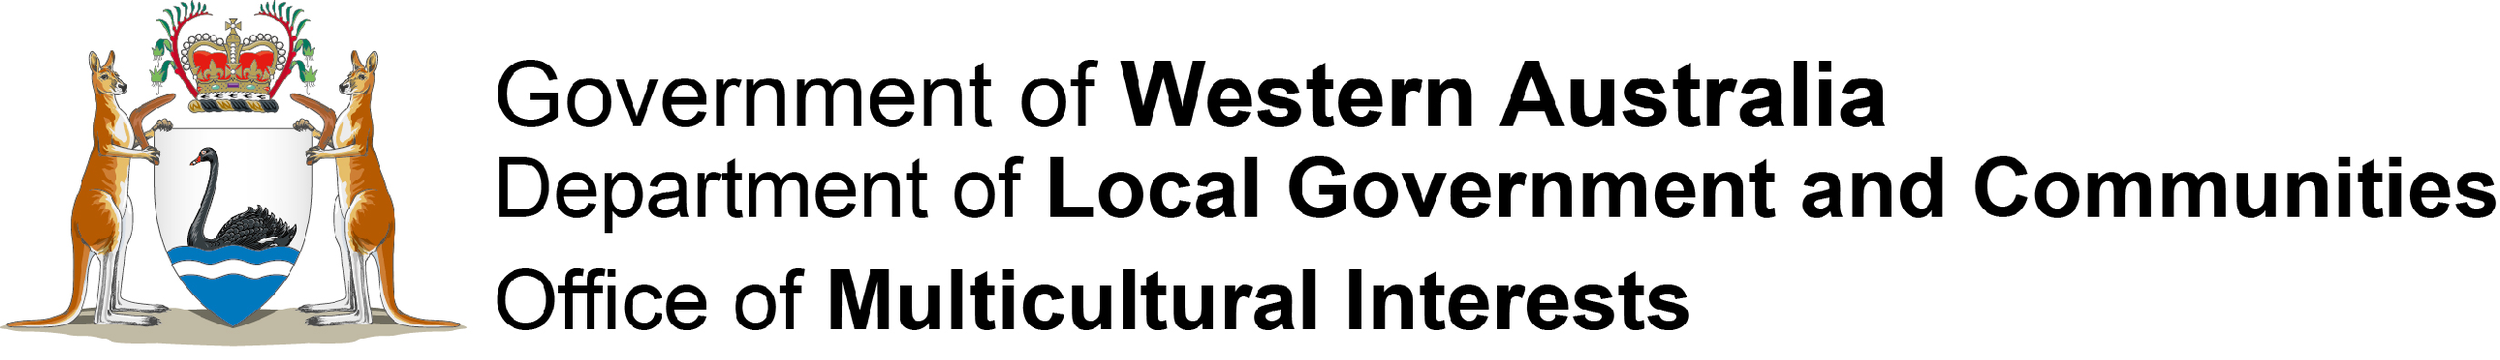 Office-of-Multicultural-Interests.png